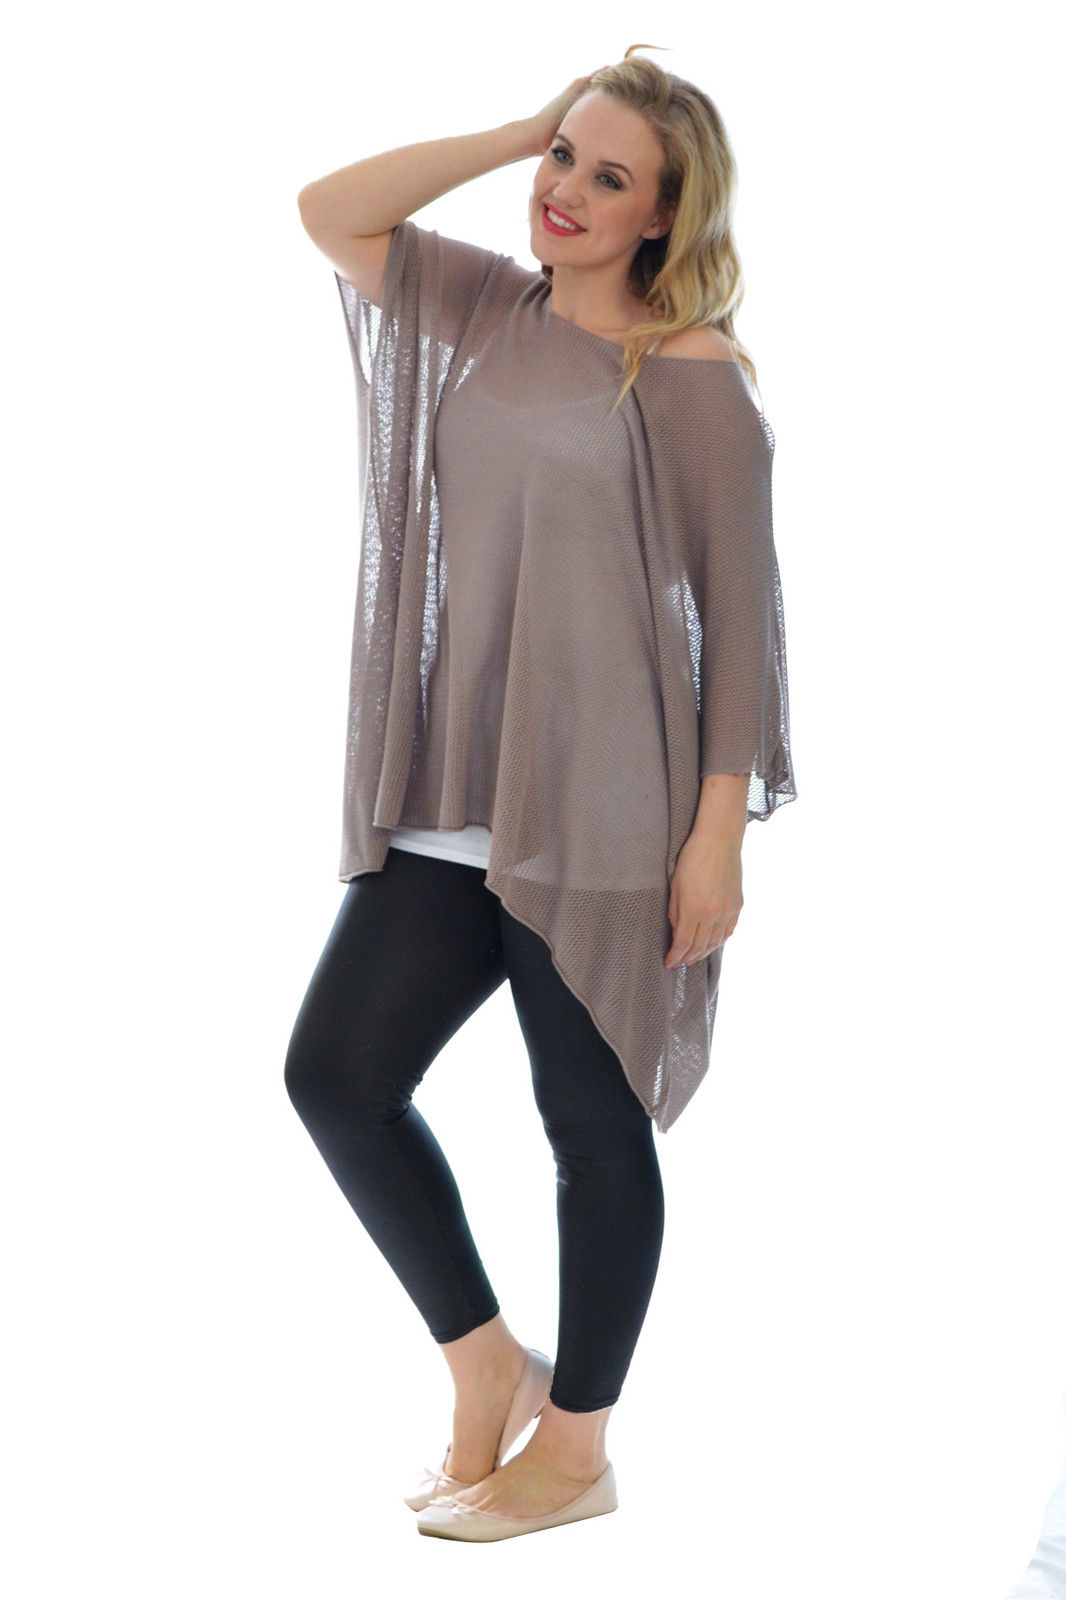 Womens New Soft Knit Baggy Oversized Tunic Sweater Top ...